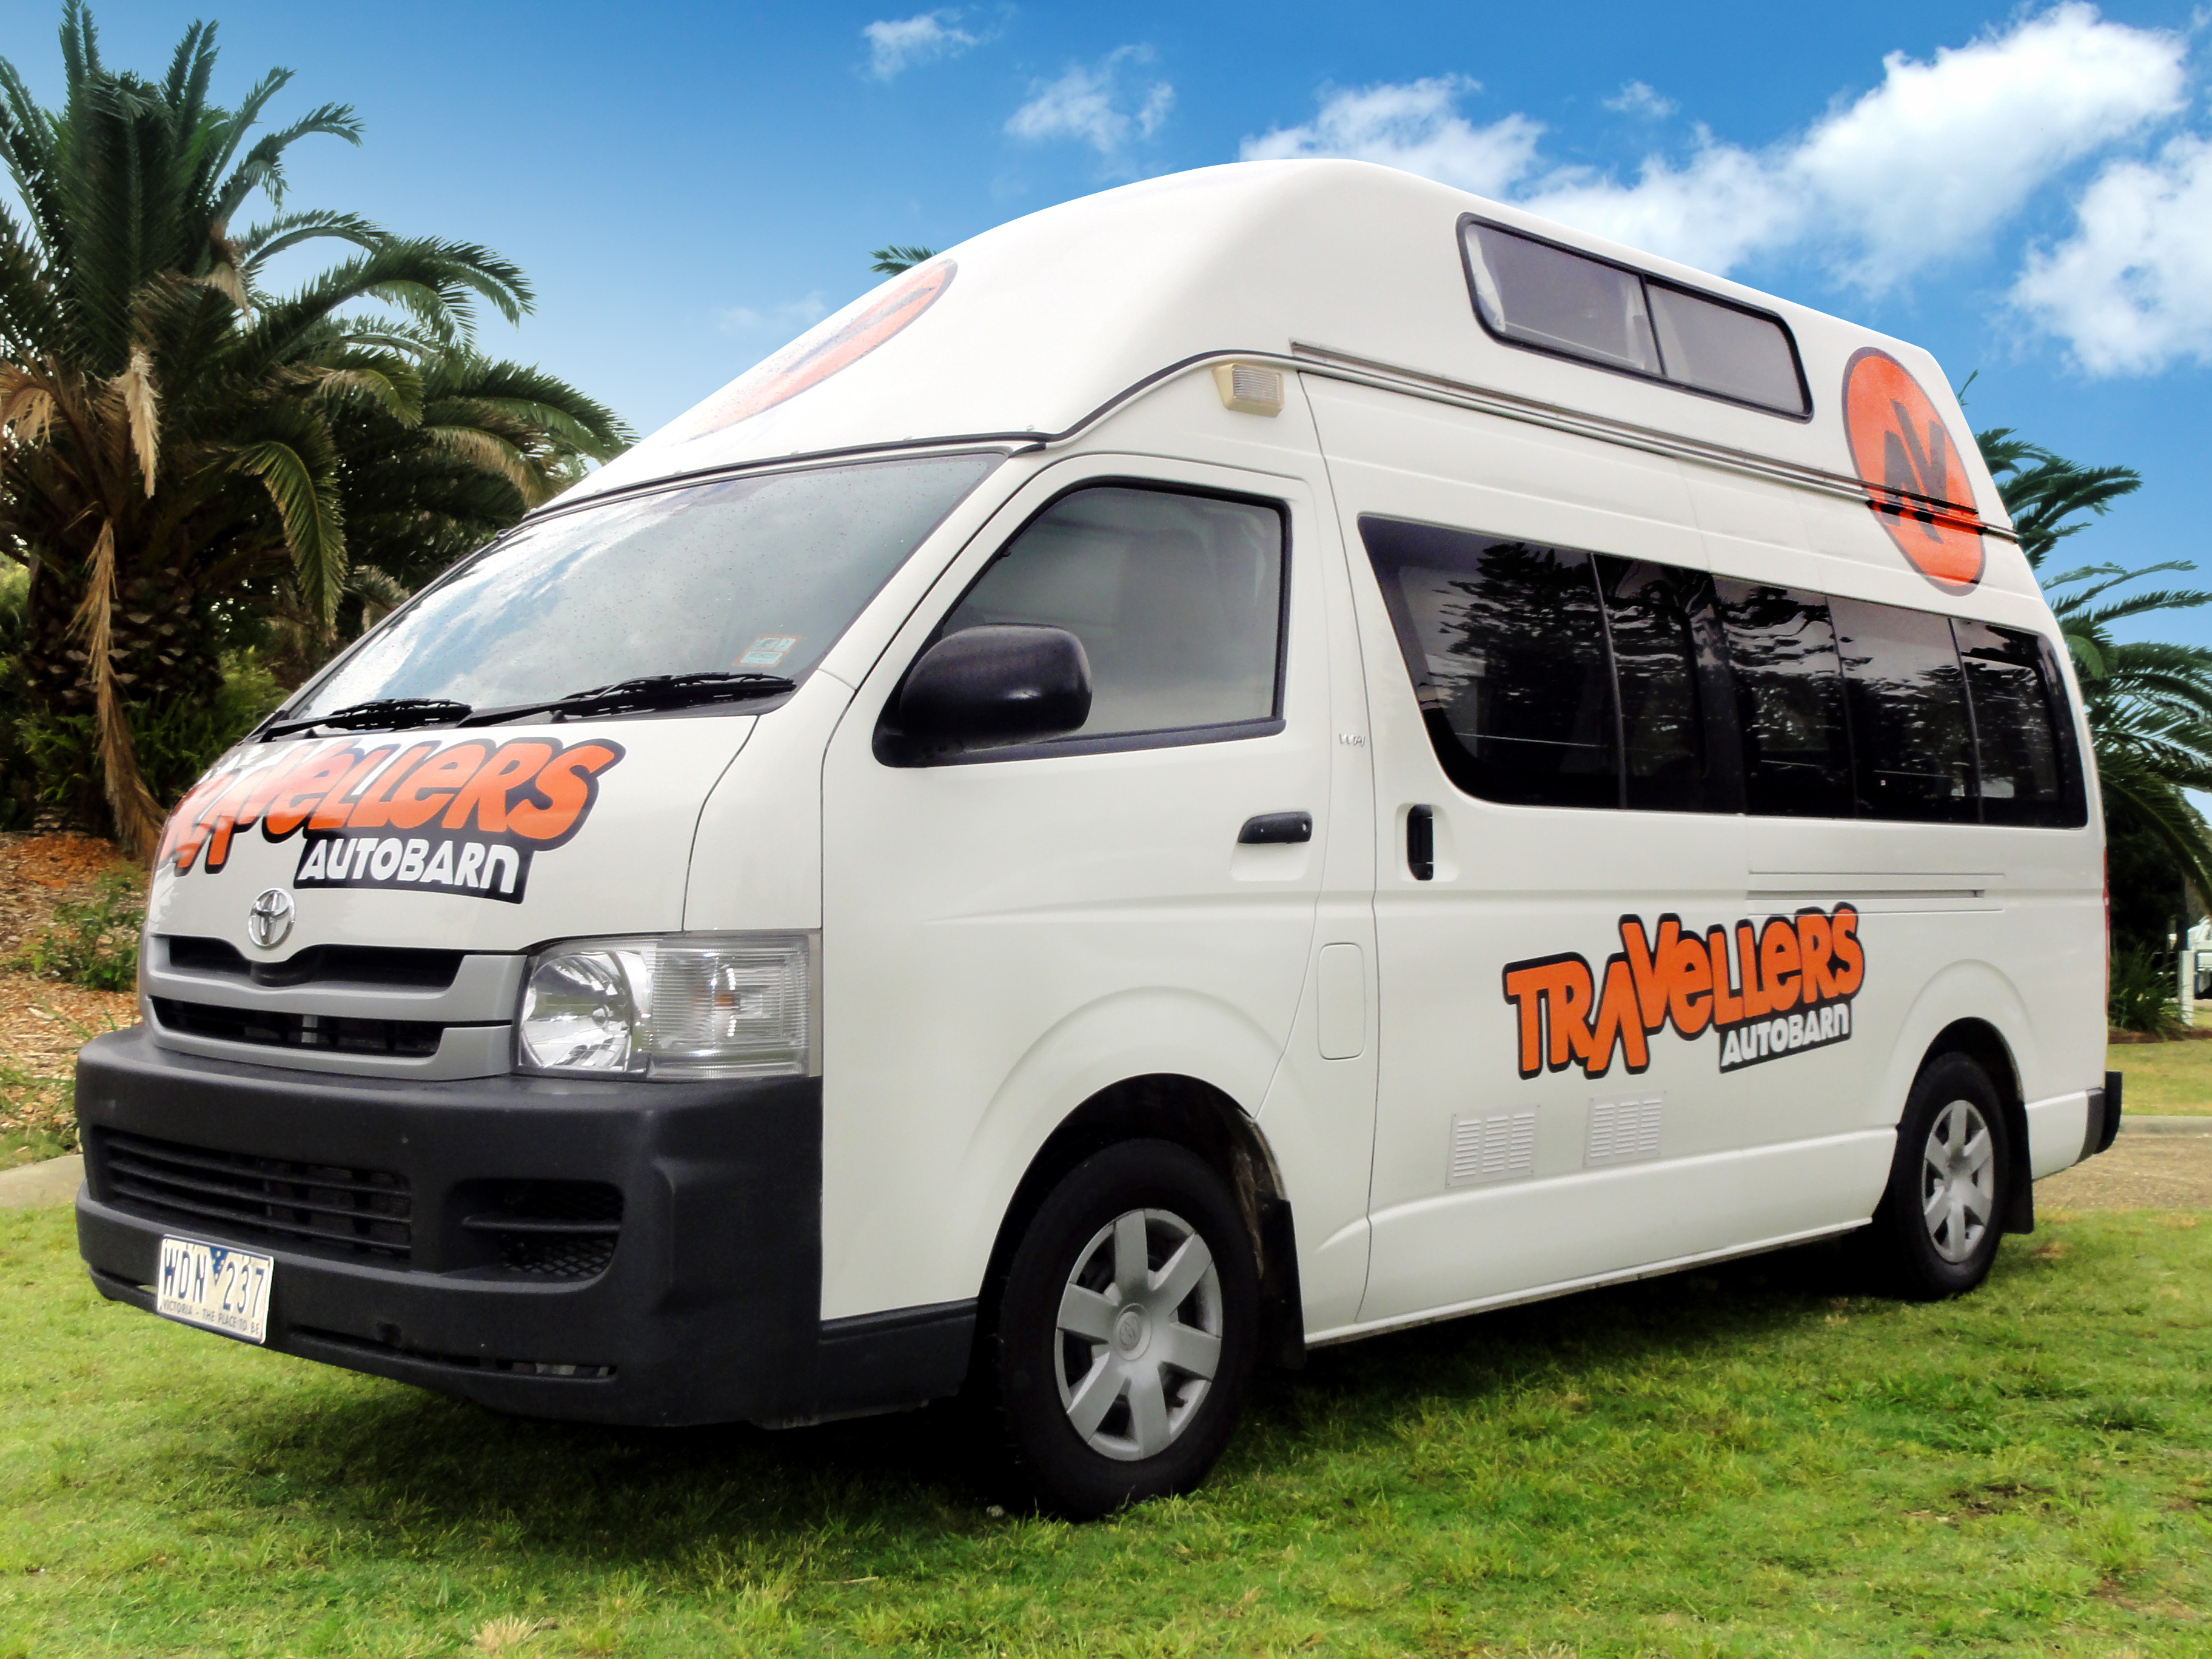 Introducing our Hi5 Camper - Travellers Autobarn